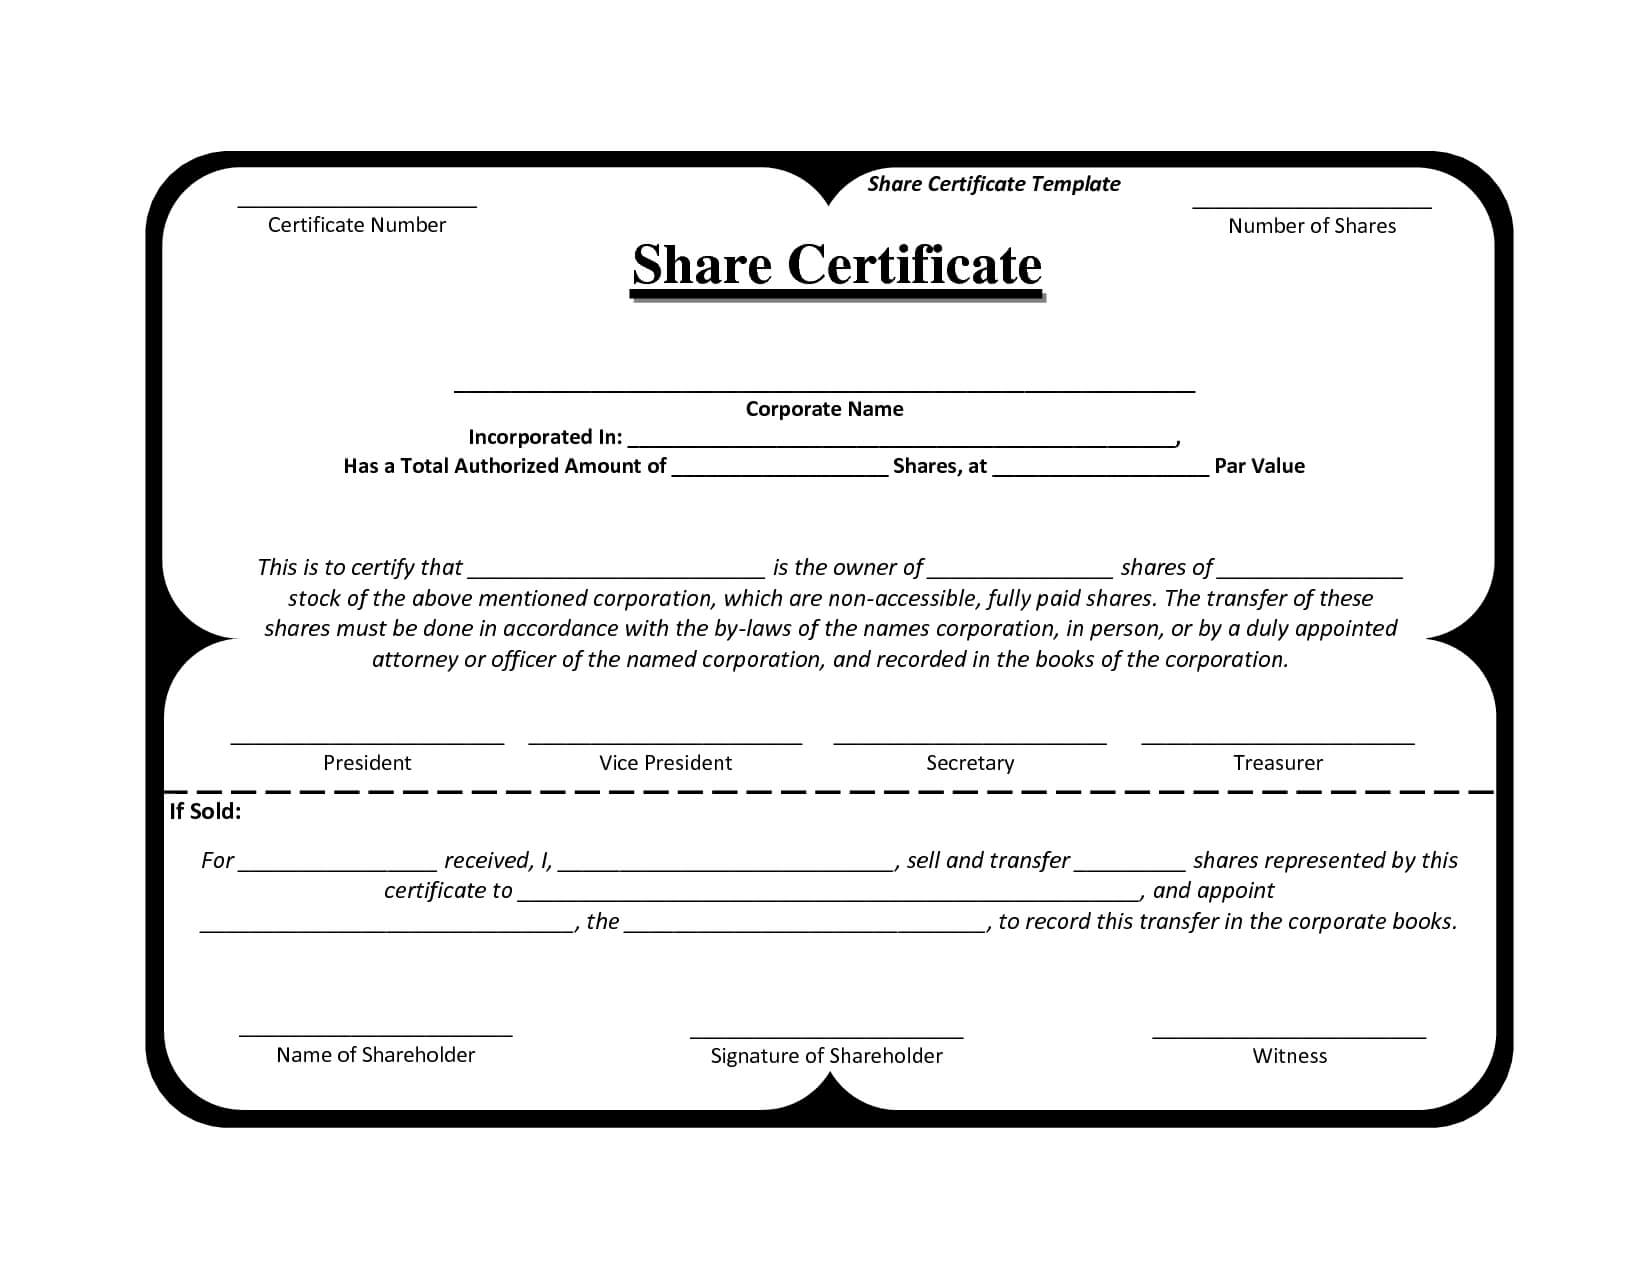 Template Share Certificate Rbscqi9V | Certificate Templates In Template Of Share Certificate